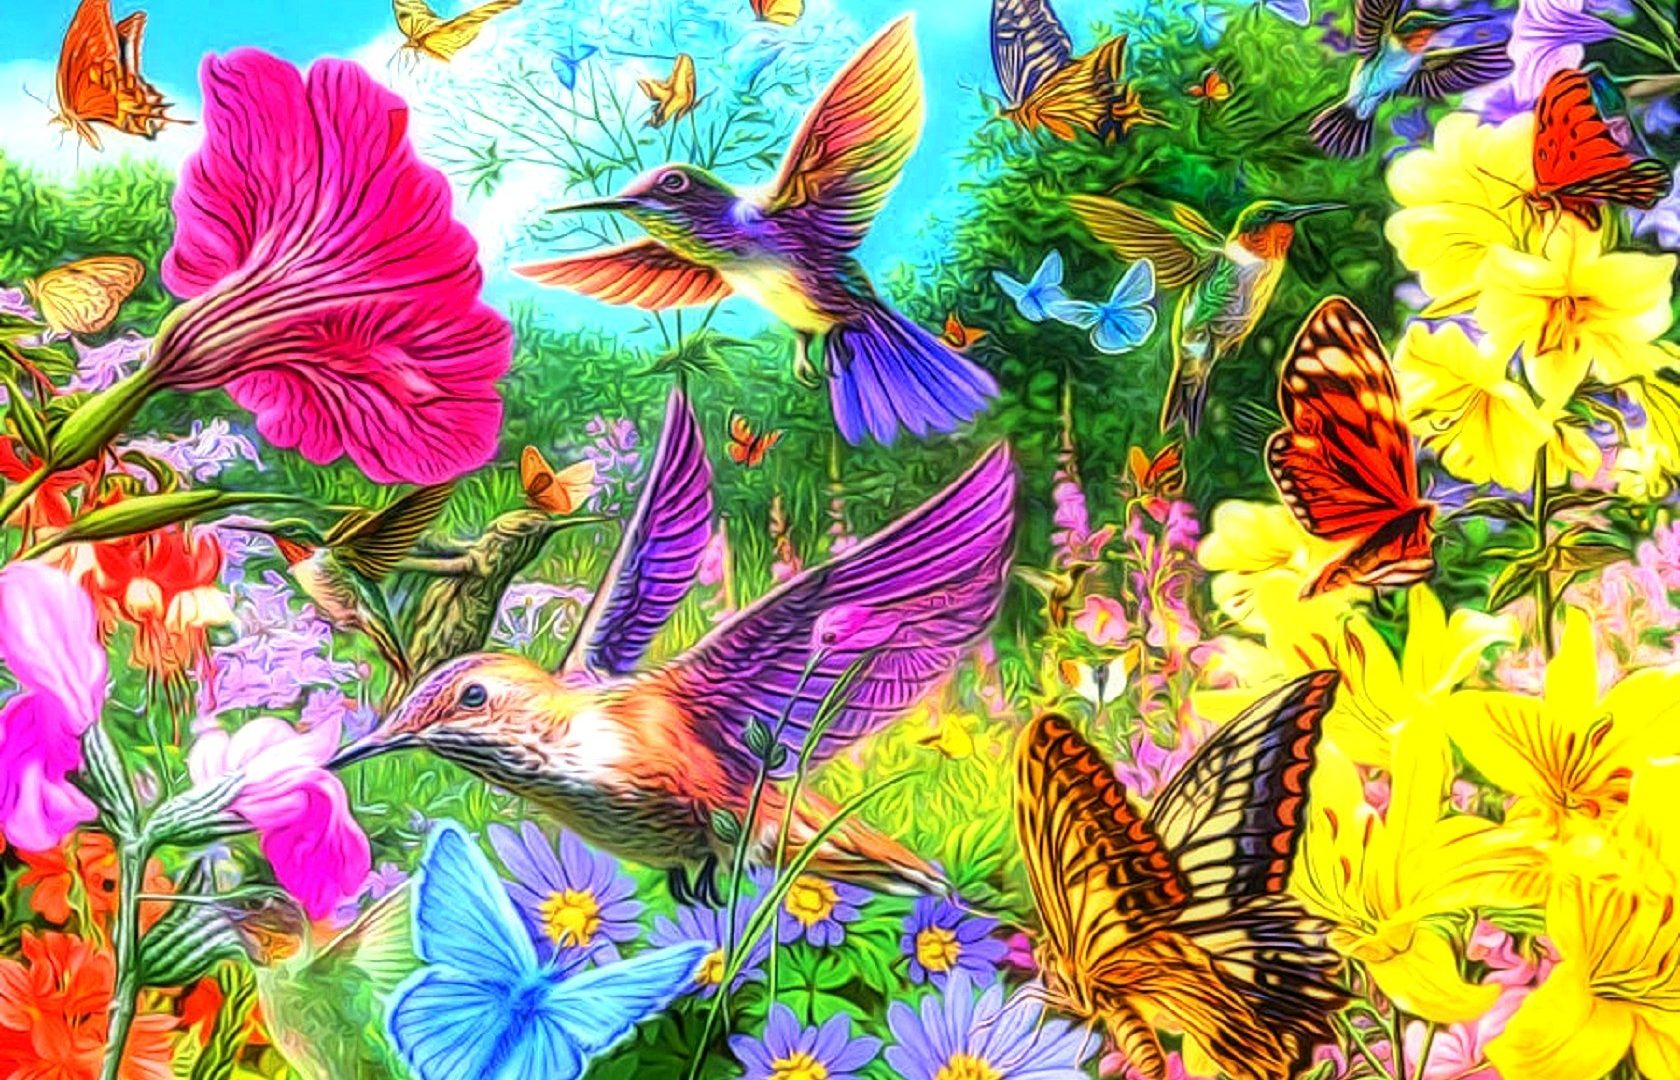 Beautiful Pictures Of Flowers And Butterflies Birds The Many Dimensional Levels Of Venus Part Ii Unariun